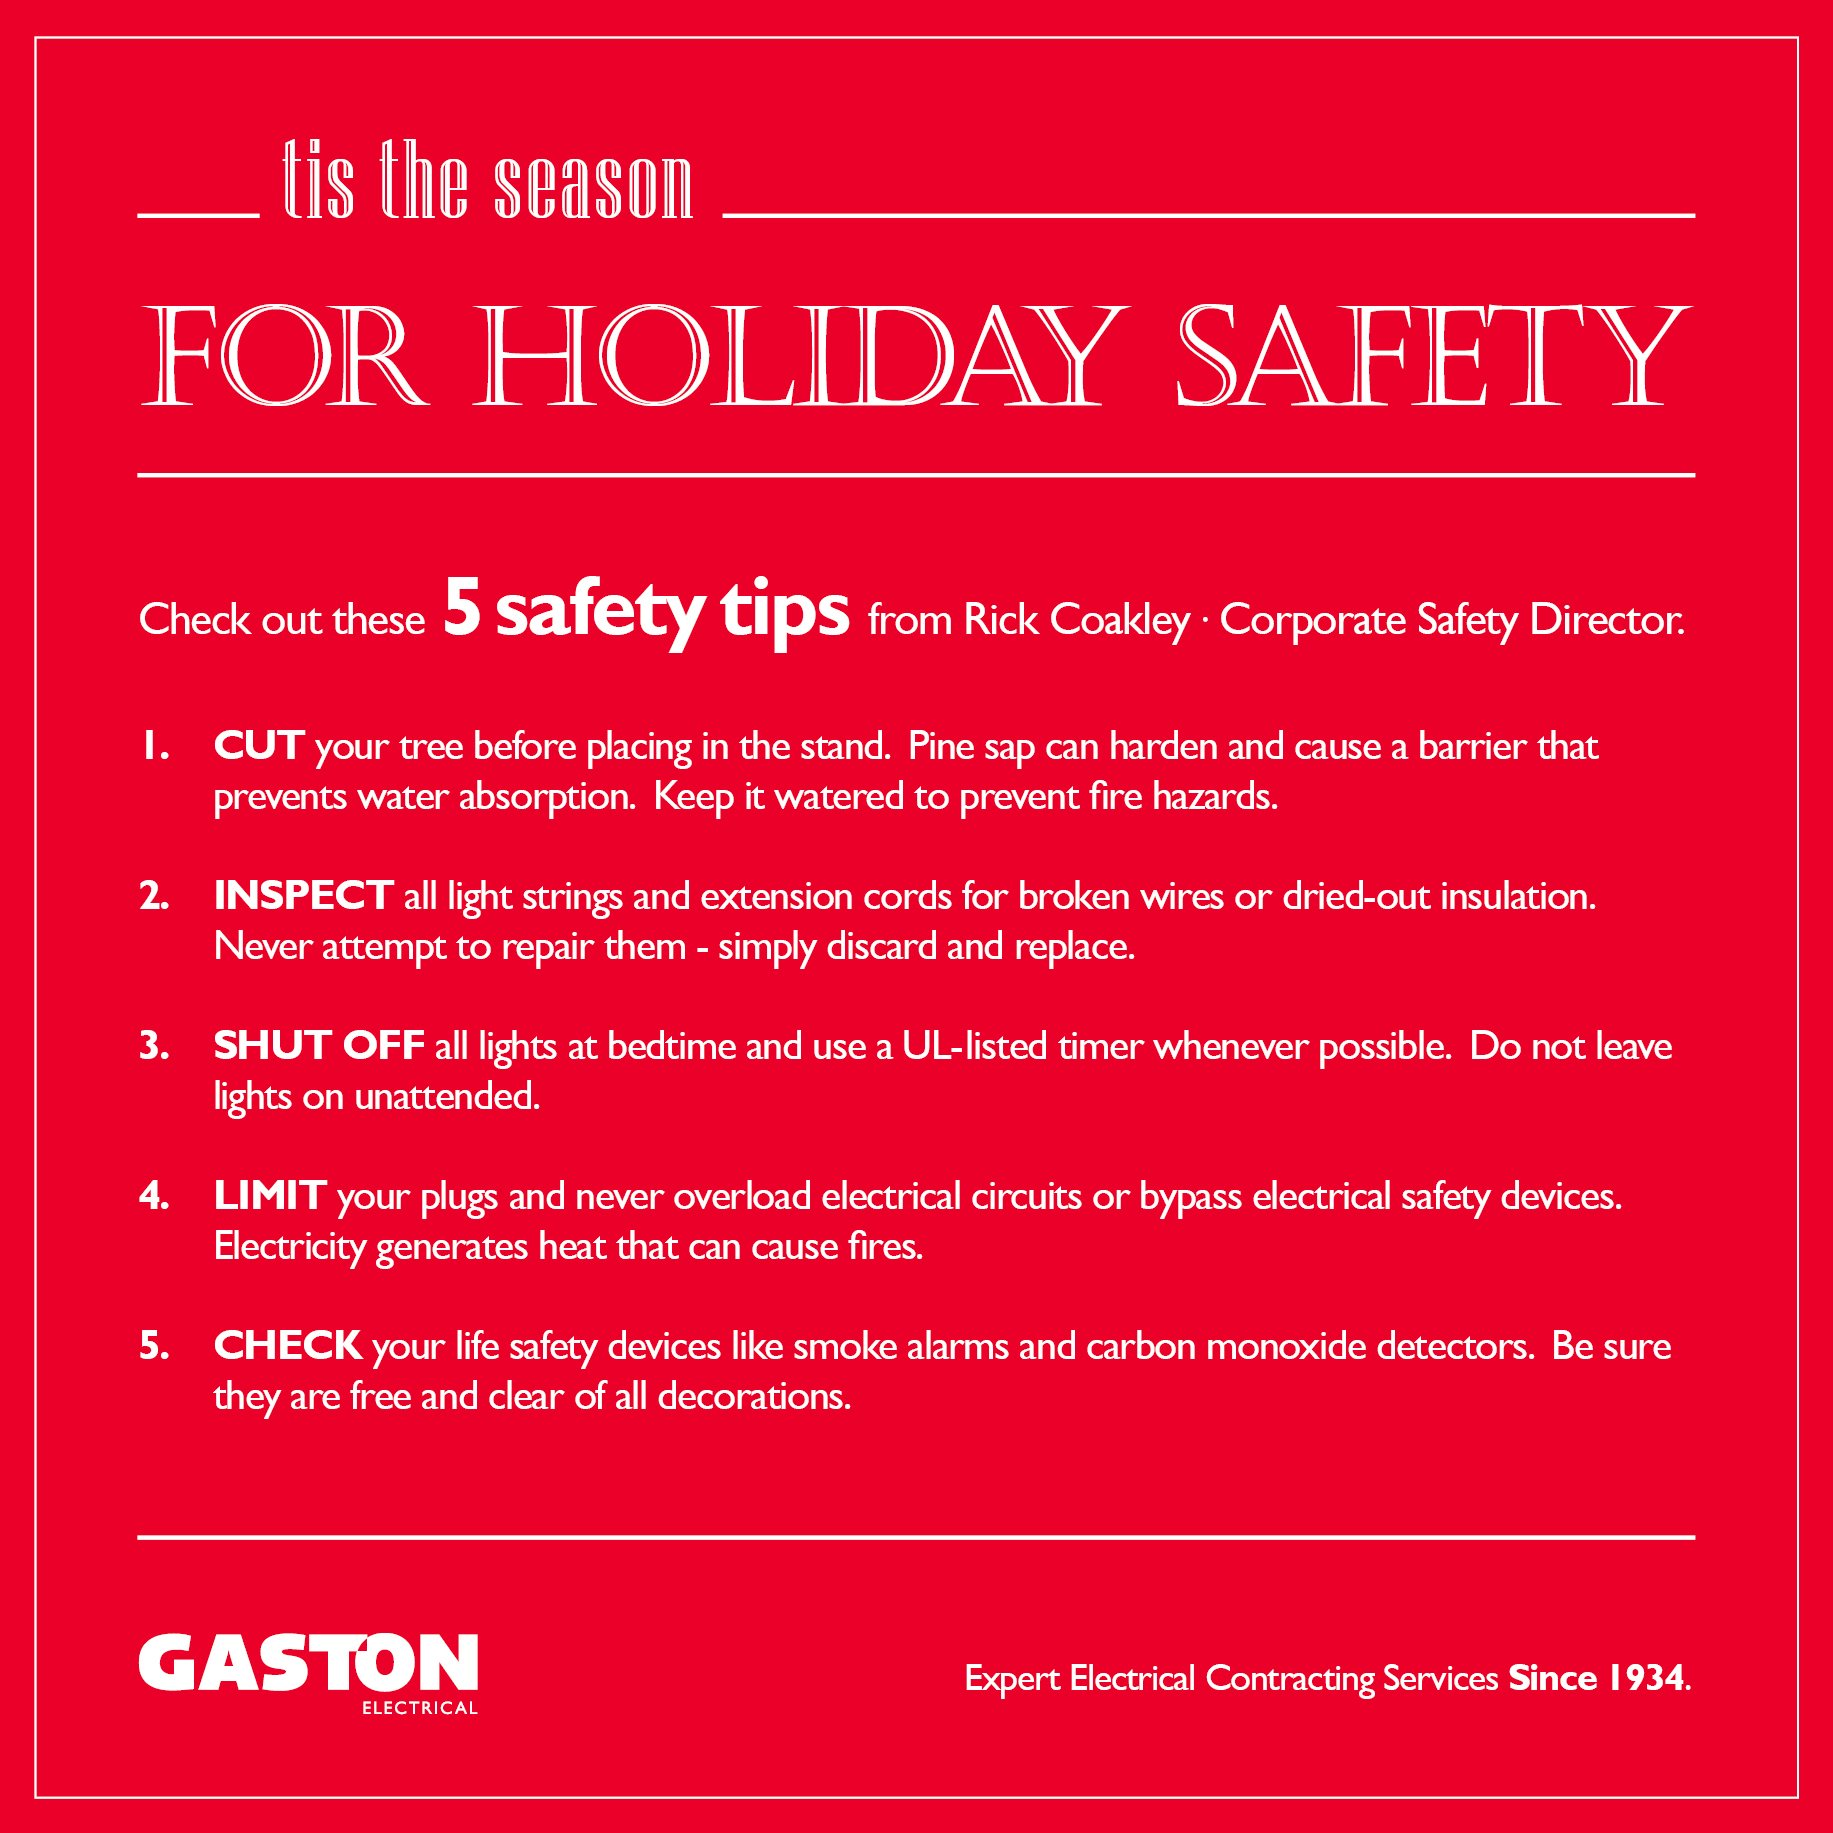 Gaston Electrical On Twitter Tis The Season For Holidaysafety Wiring Smoke Detectors Off Lighting Circuit Check Out These Top5 Tips From Our Gastonelec Corporate Safety Director